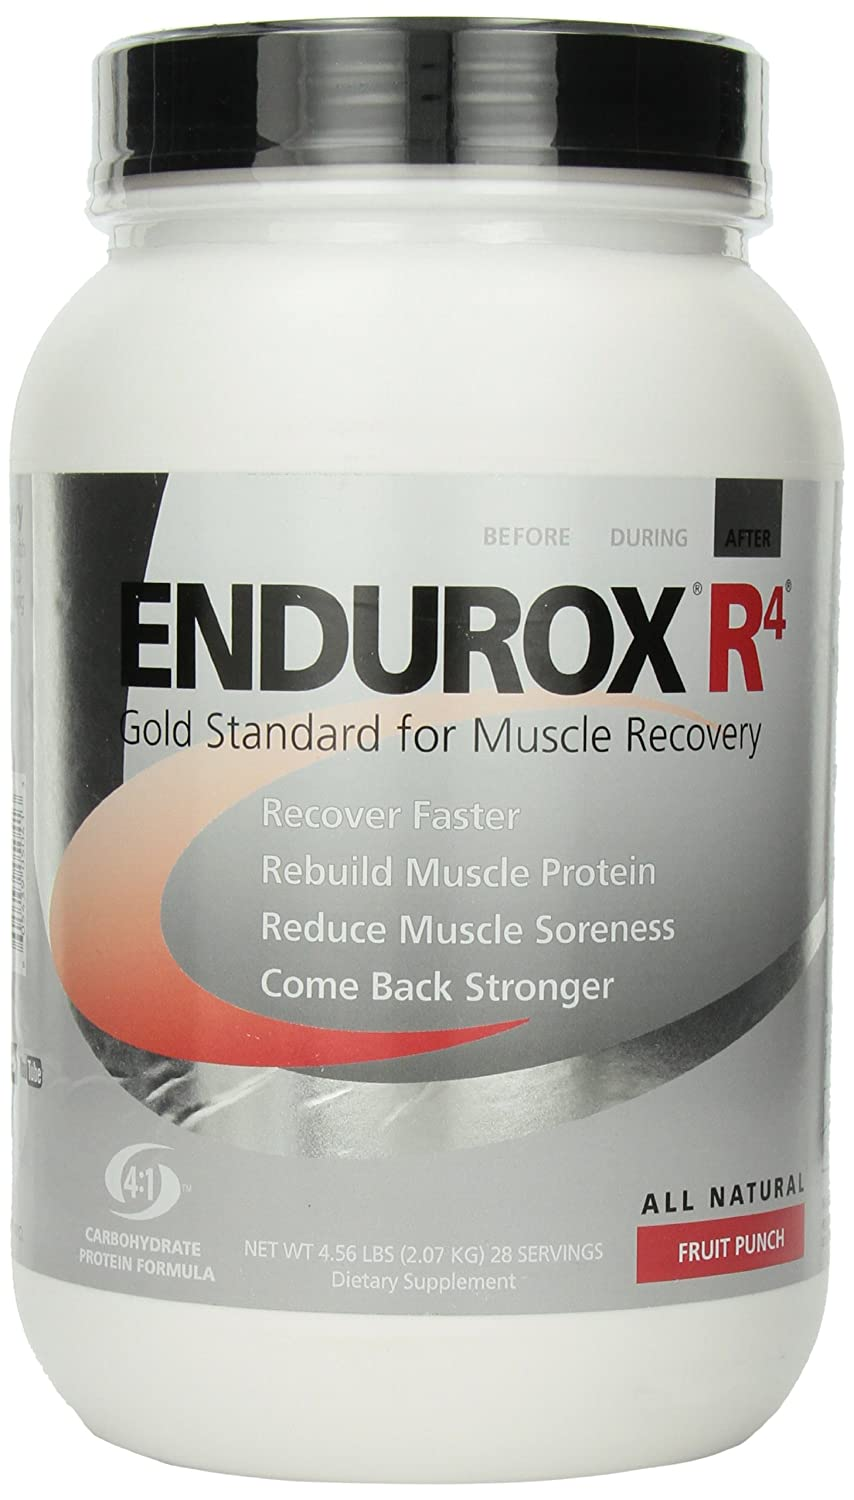 PacificHealth Endurox R4, All Natural Post Workout Recovery Drink Mix with Protein, Carbs, Electrolytes and Antioxidants for Superior Muscle Recovery, Net Wt. 4.56 lb., 28 serving (Fruit Punch)